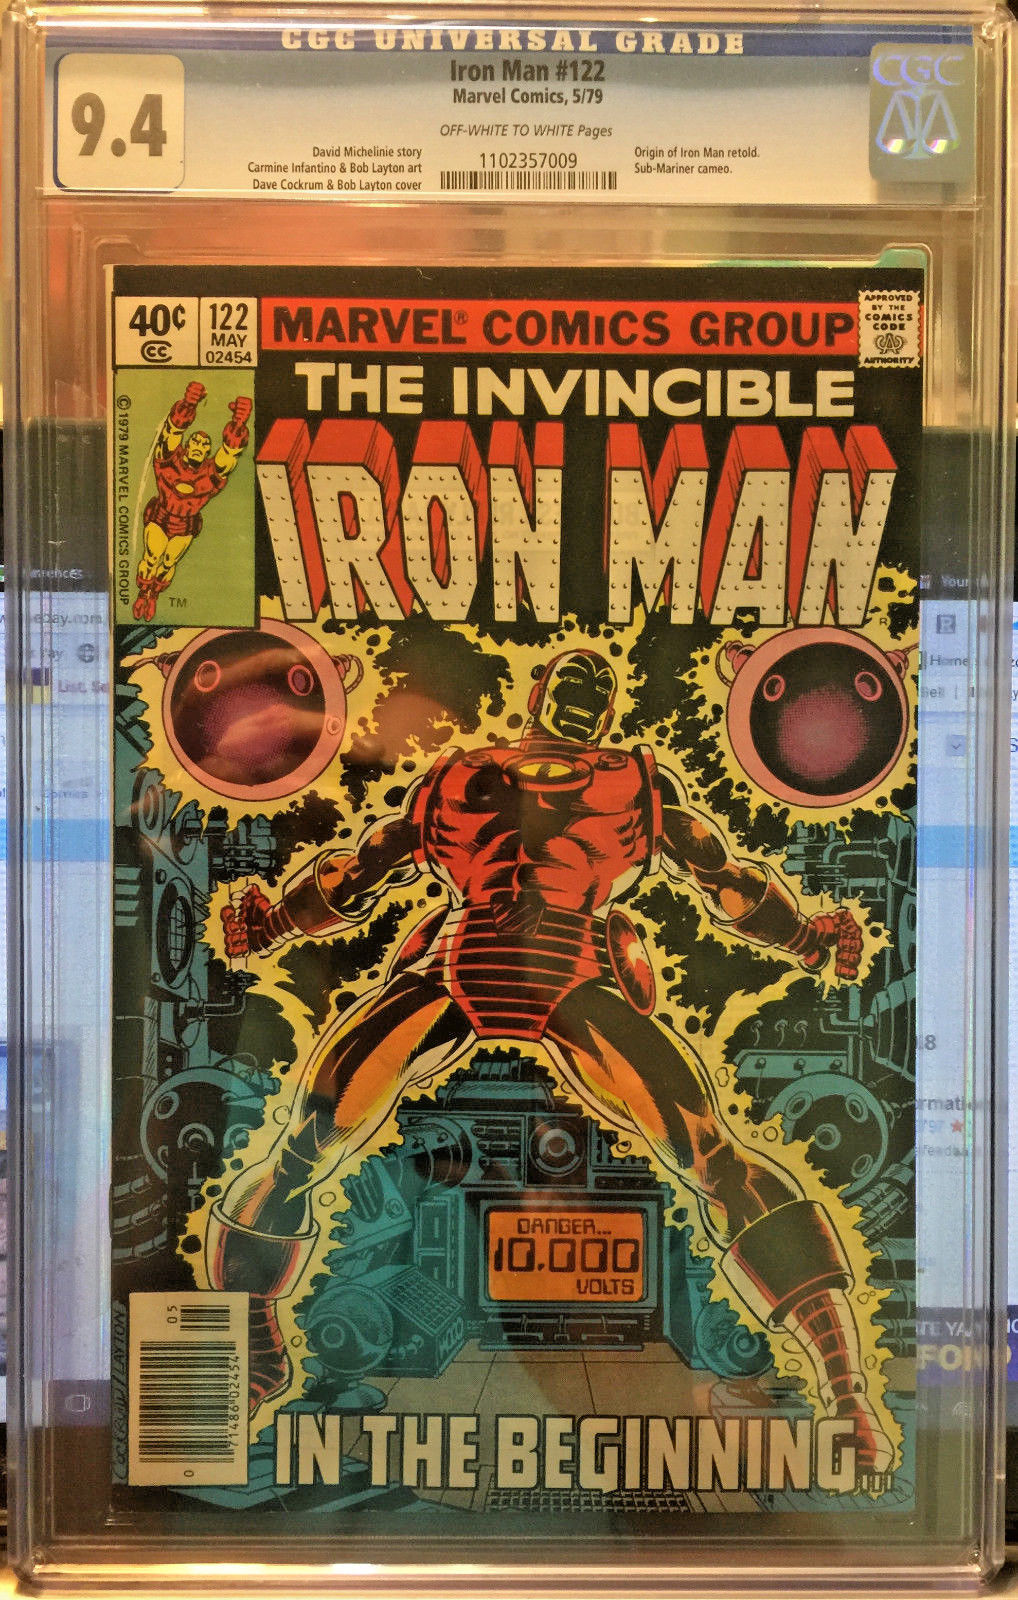 IRON MAN #122 BRONZE AGE MARVEL 1979 CGC 9.4 COCKRUM LAYTON COVER ORIGIN STORY